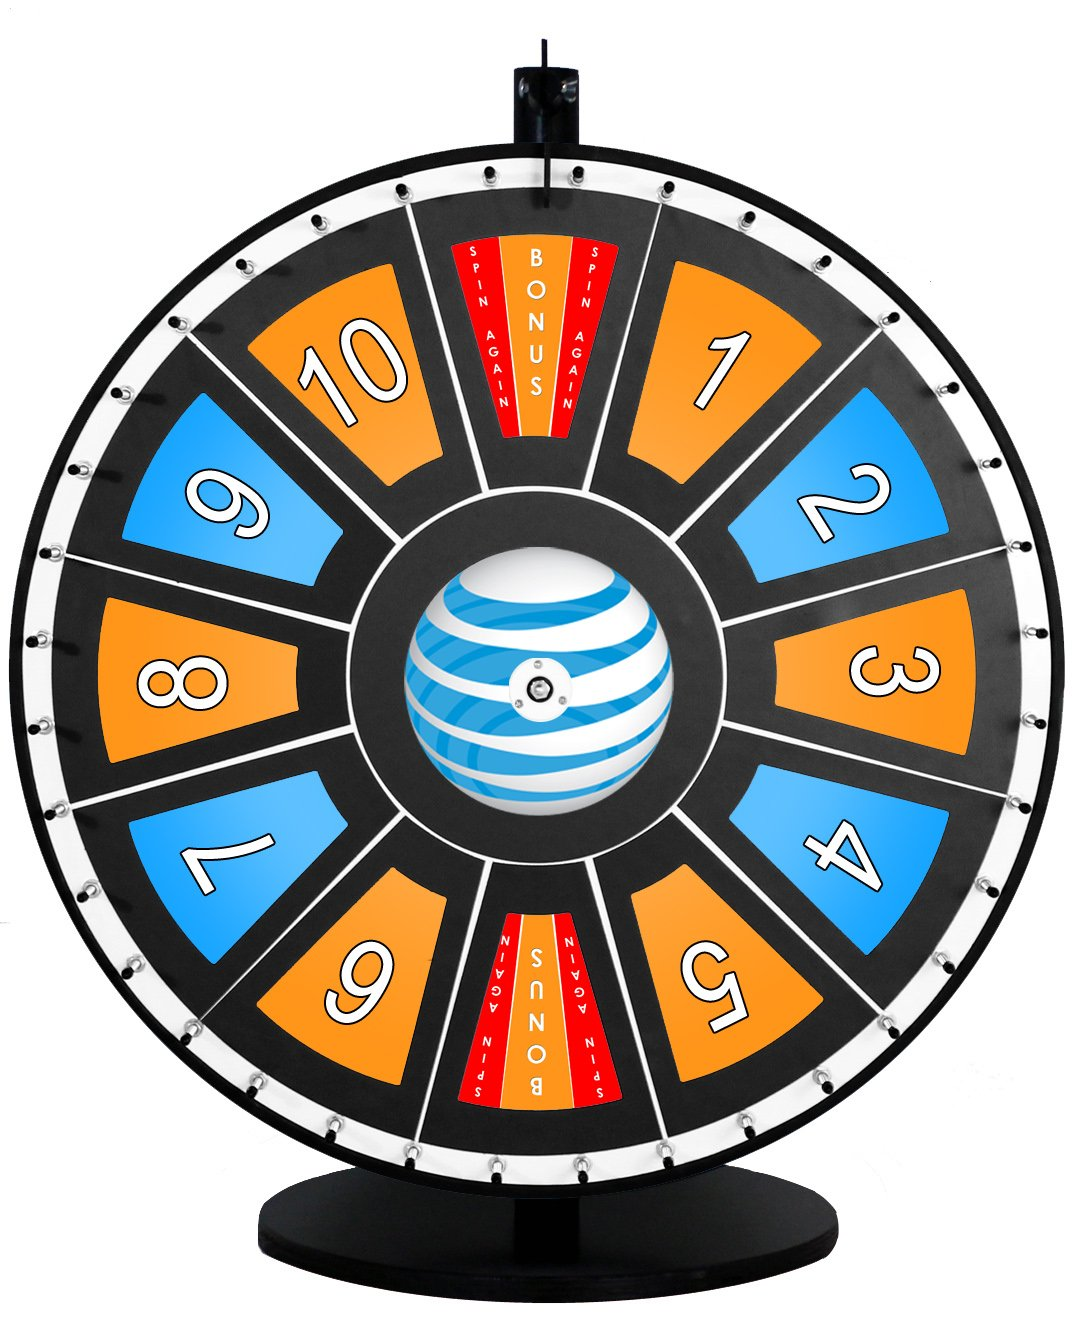 36in Insert Your Own Graphics Dry Erase Prize Wheel with Black Magnetic Frames and Table Stand by SpinningDesigns